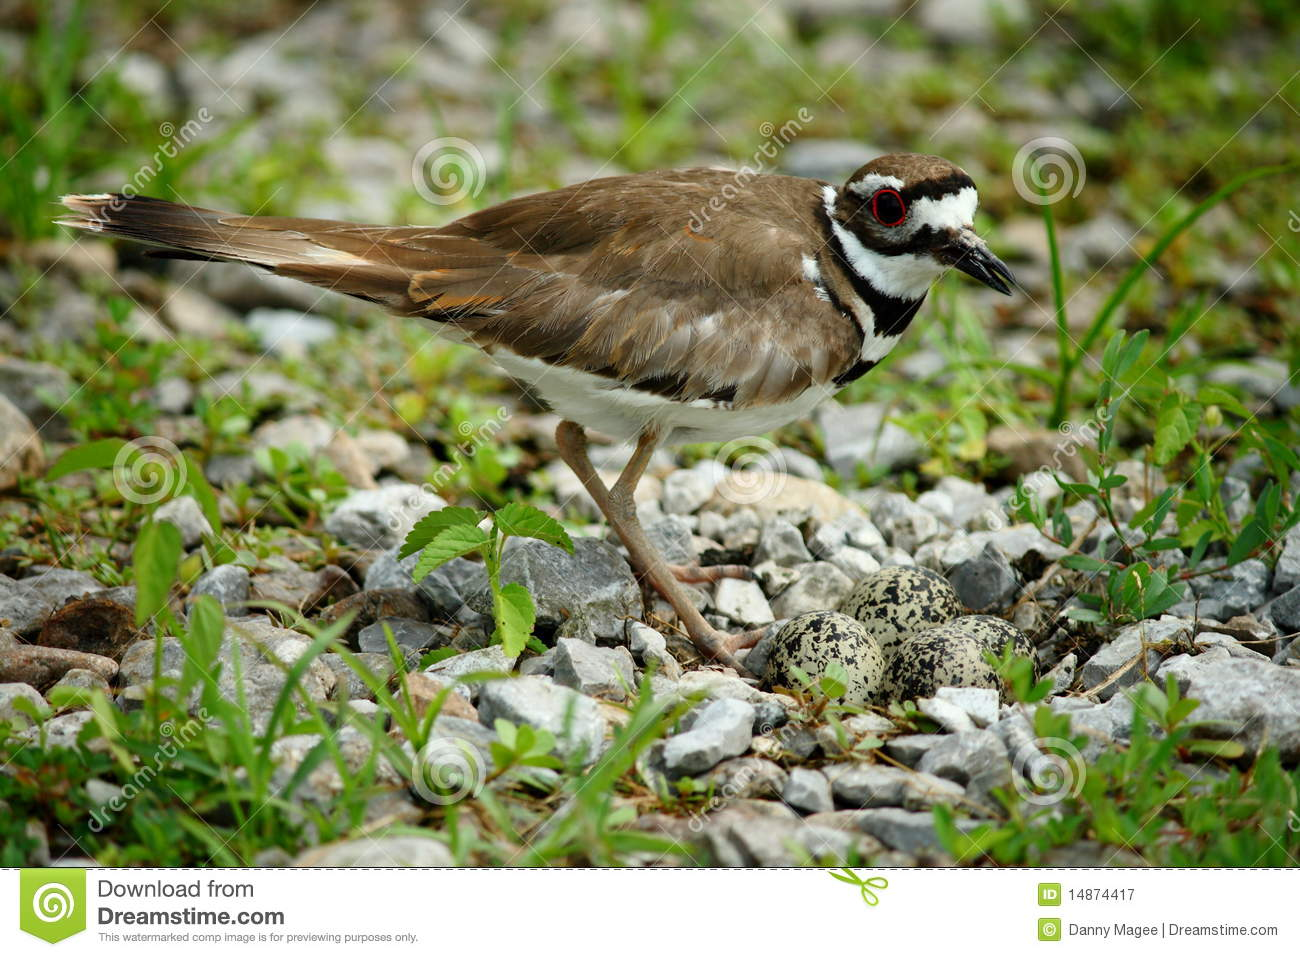 Killdeer Bird With Eggs